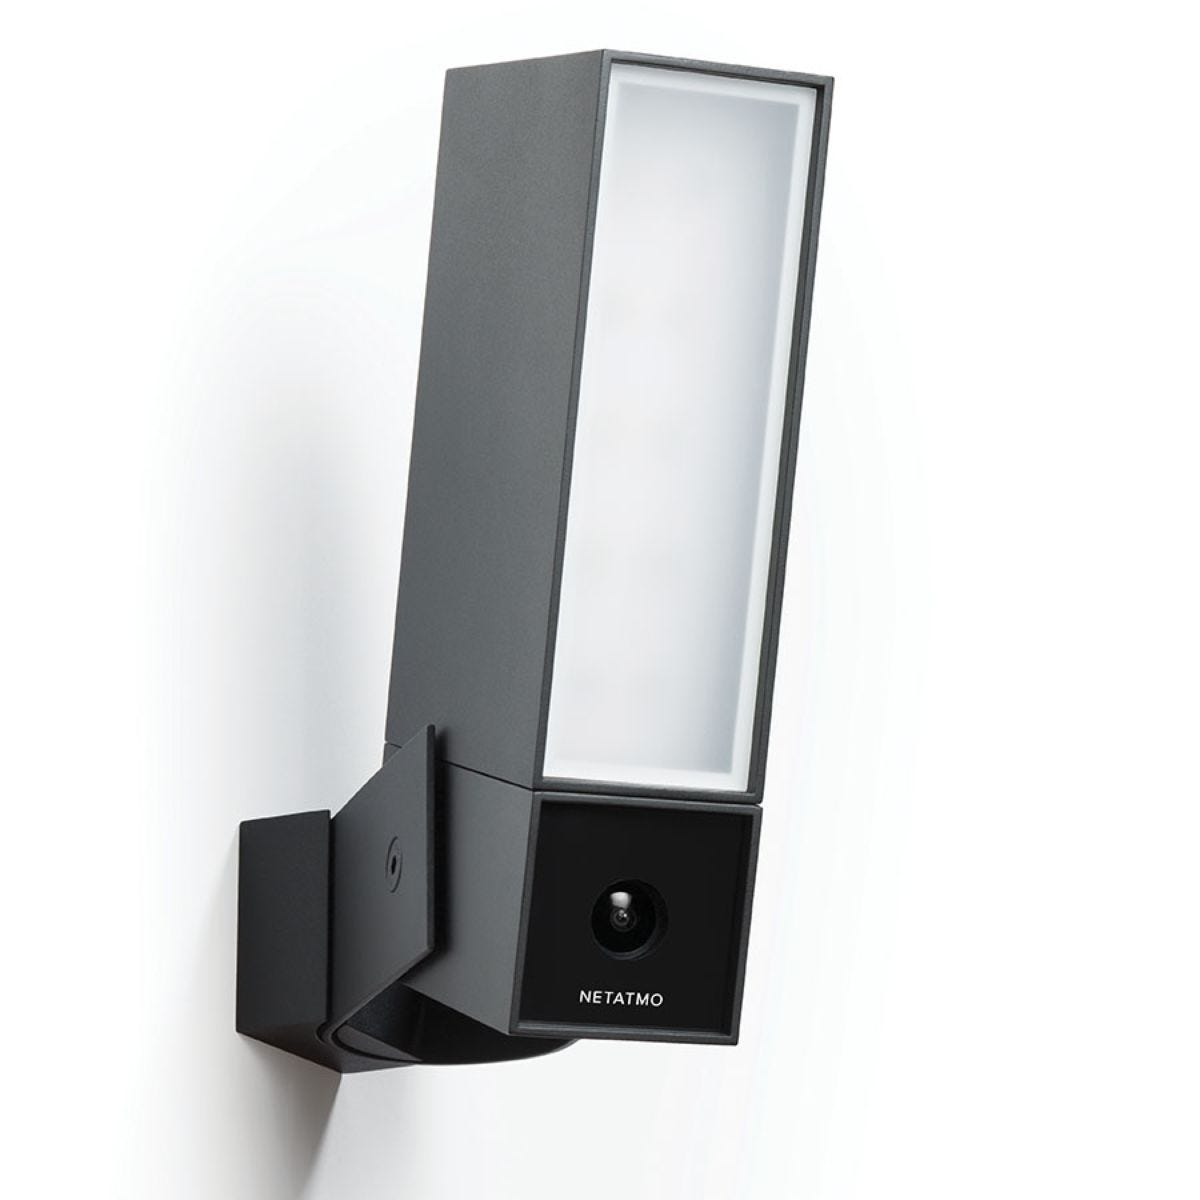 Netatmo Presence Outdoor Security Camera with People, Car and Animal Recognition